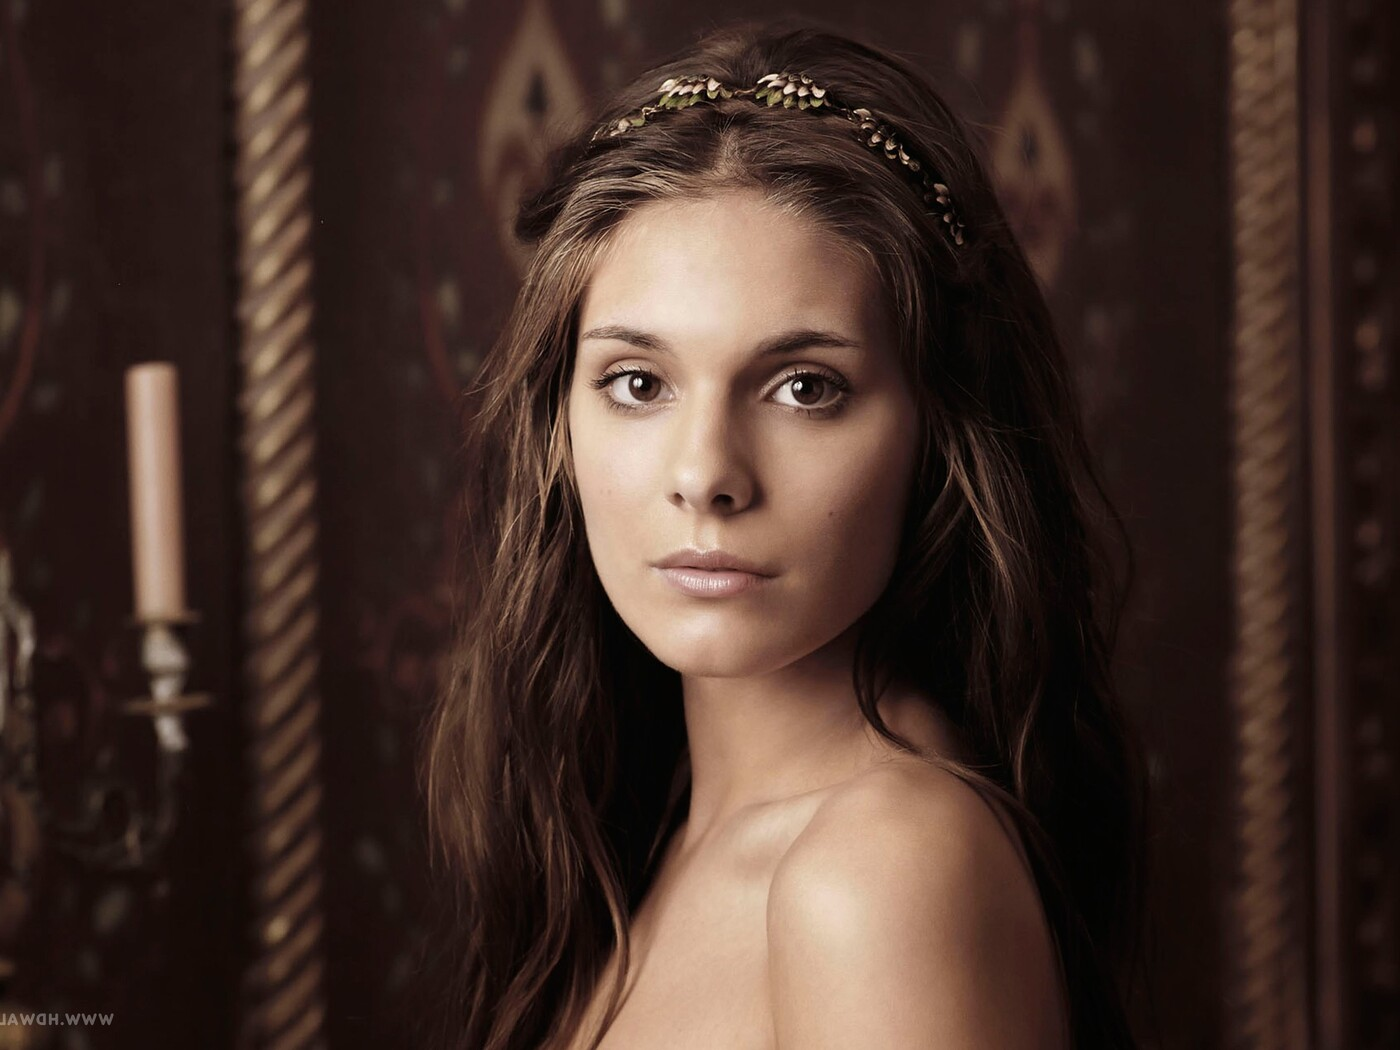 caitlin-stasey-as-kenna.jpg